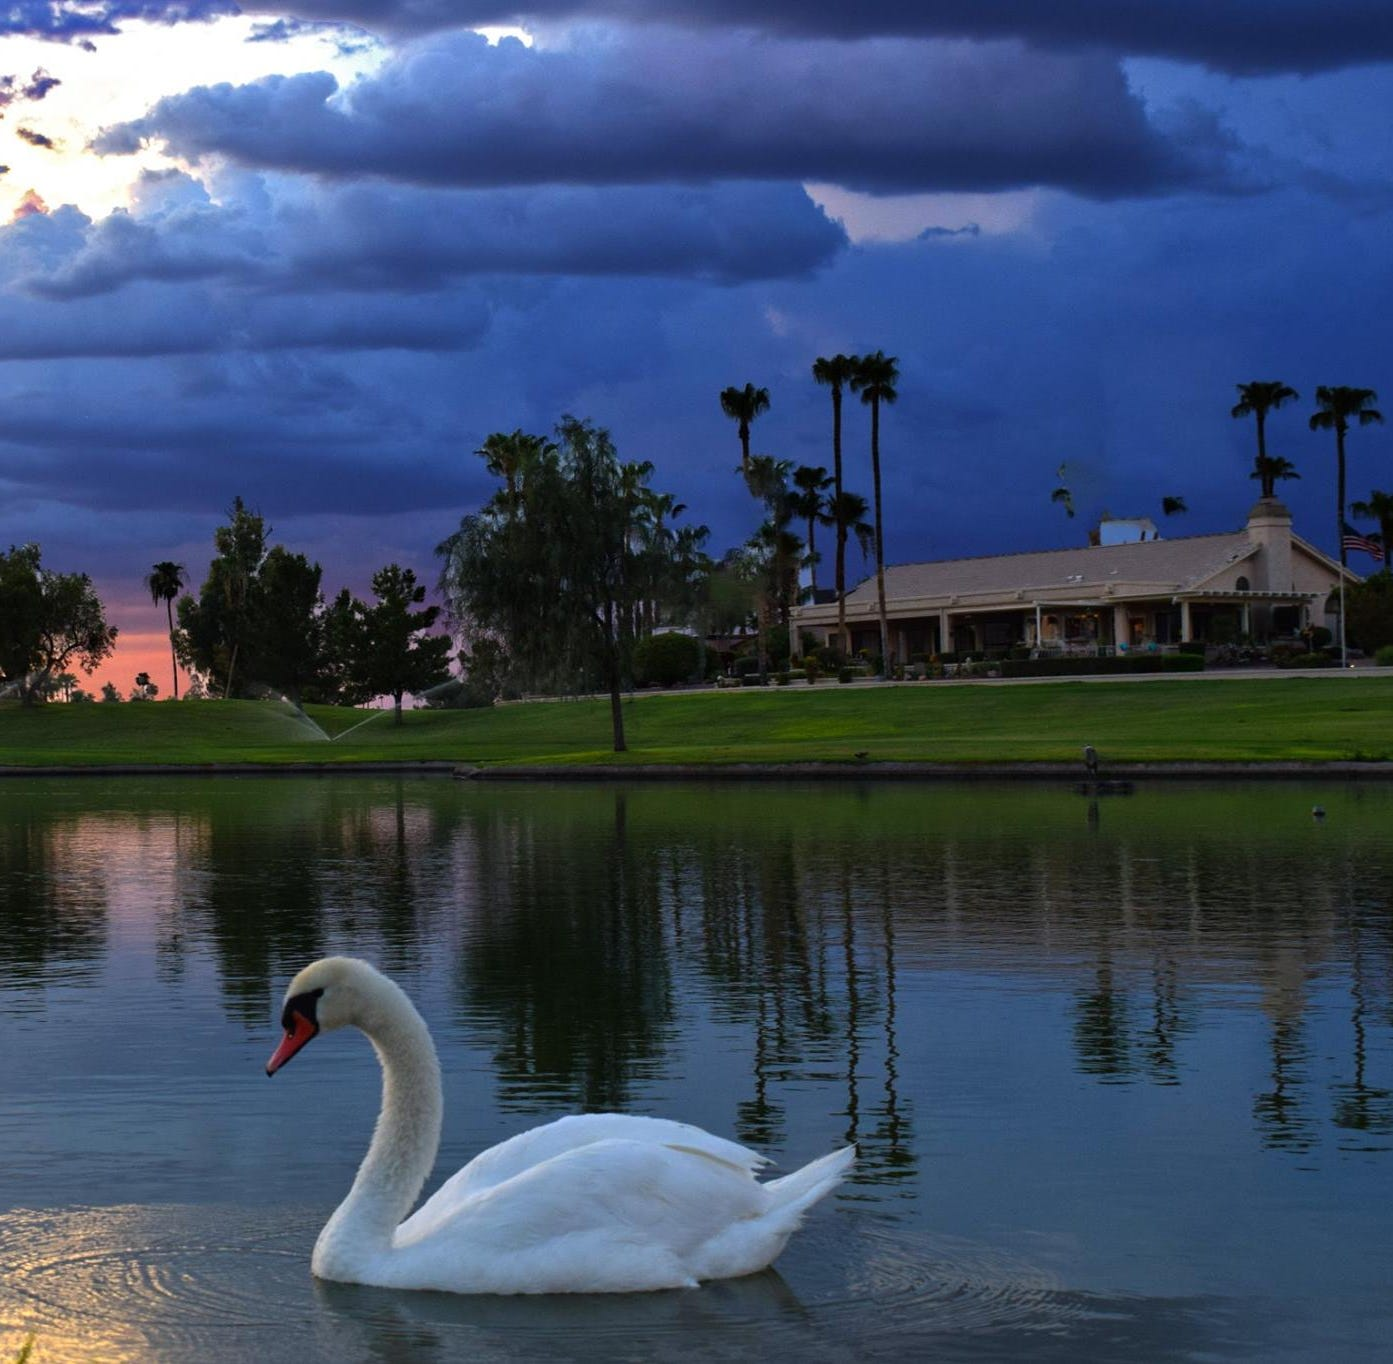 As defenseless swans fall prey, Sun City West rethinks golf course emblem